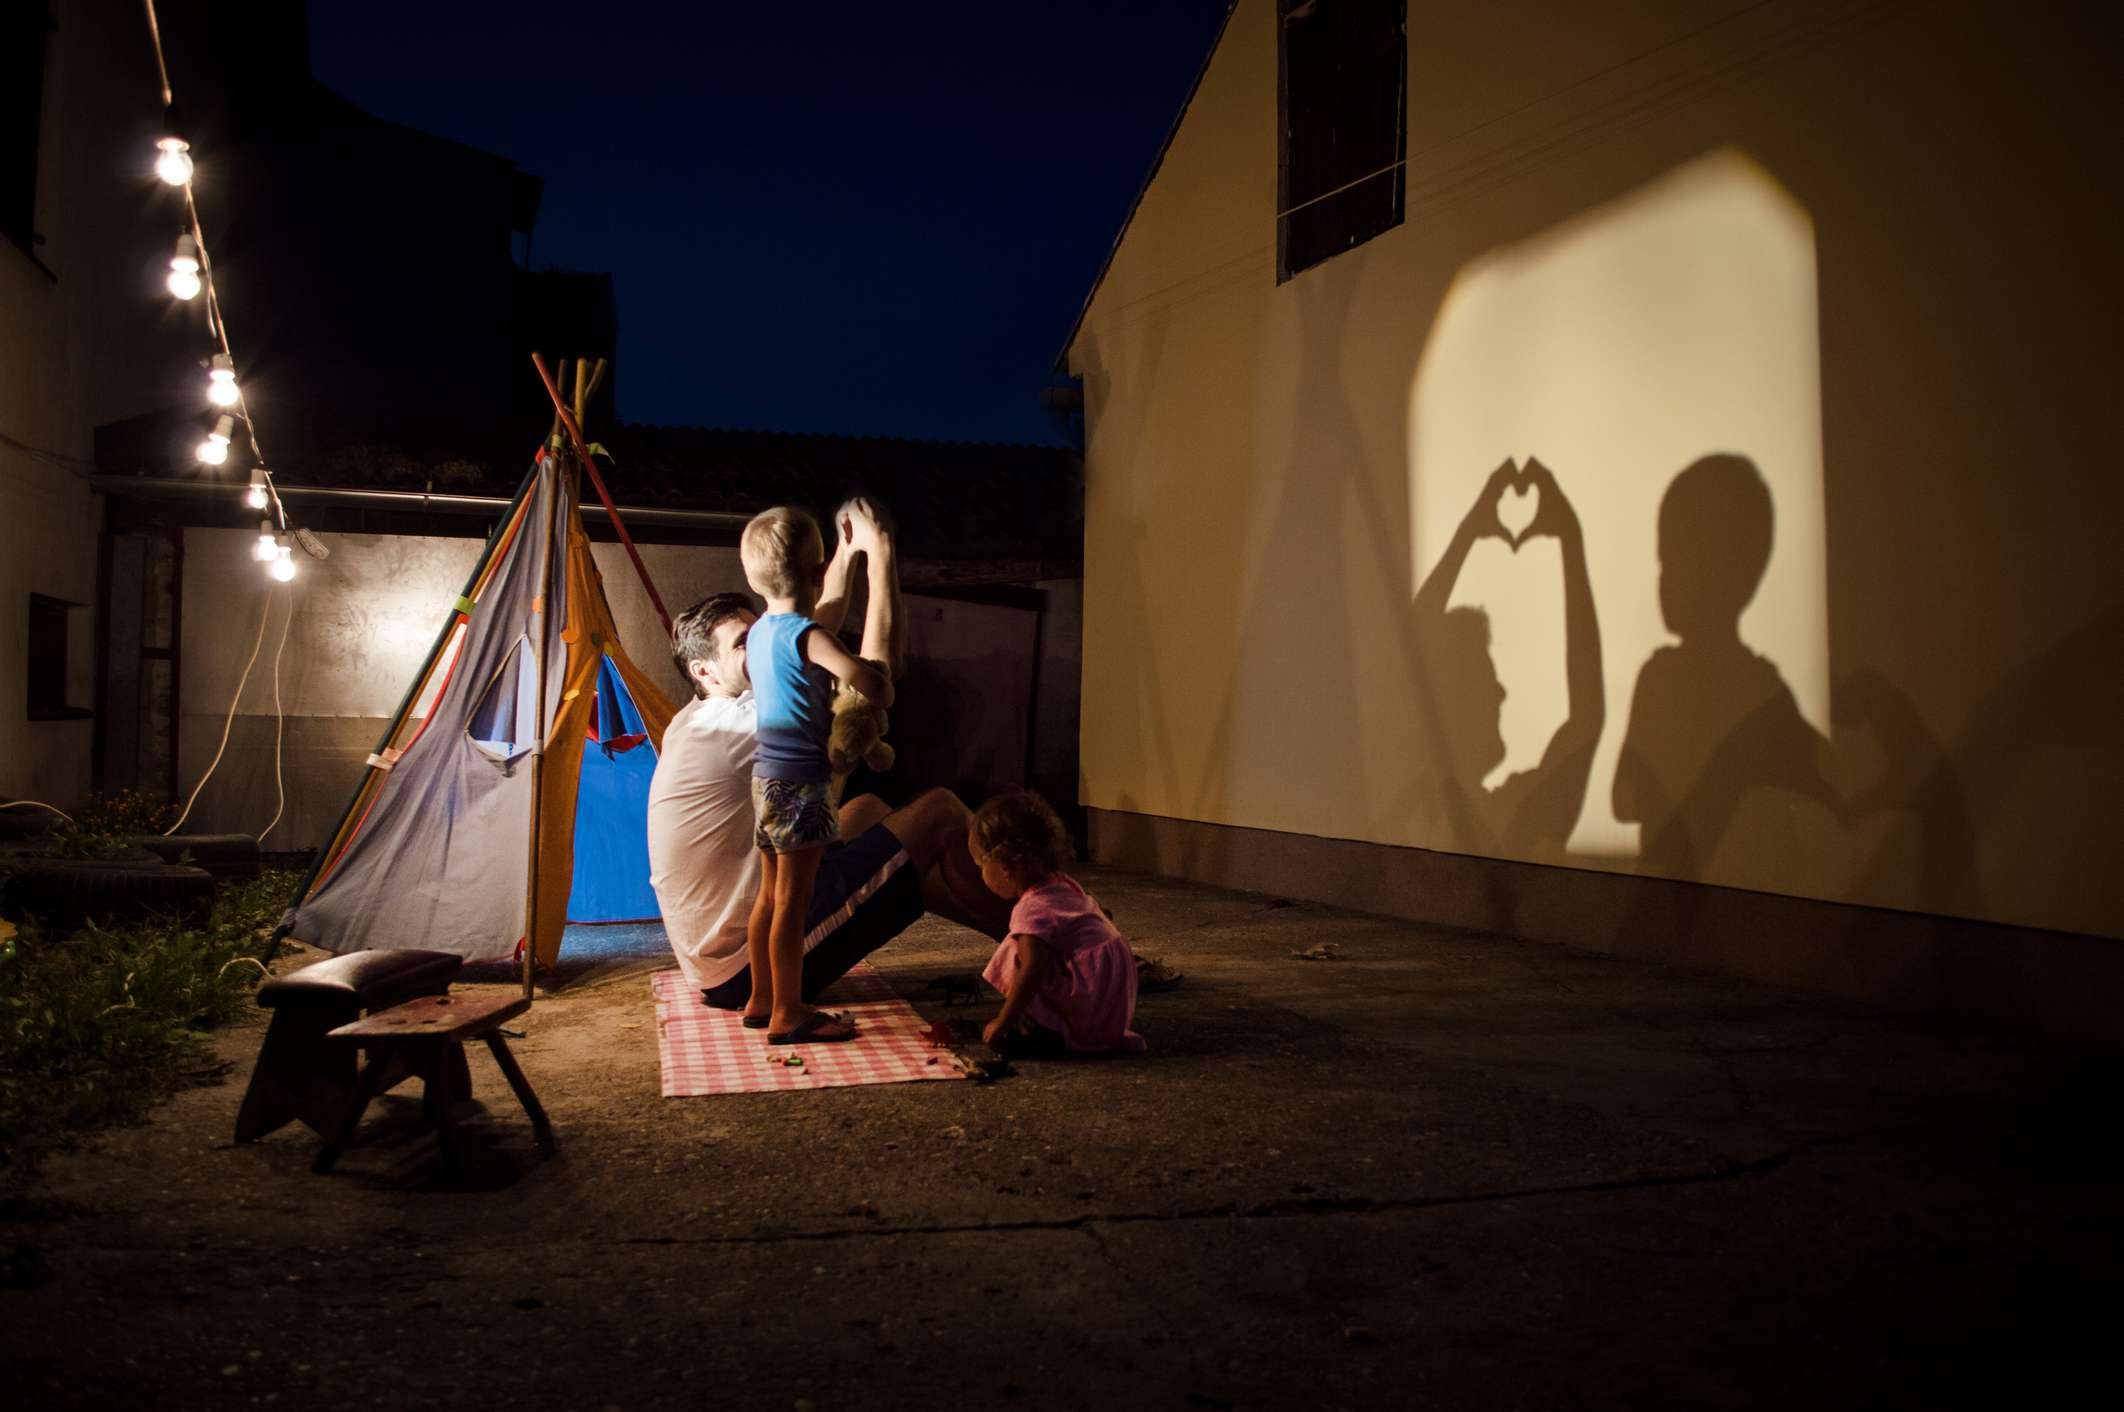 Family with young children playing with shadow puppets